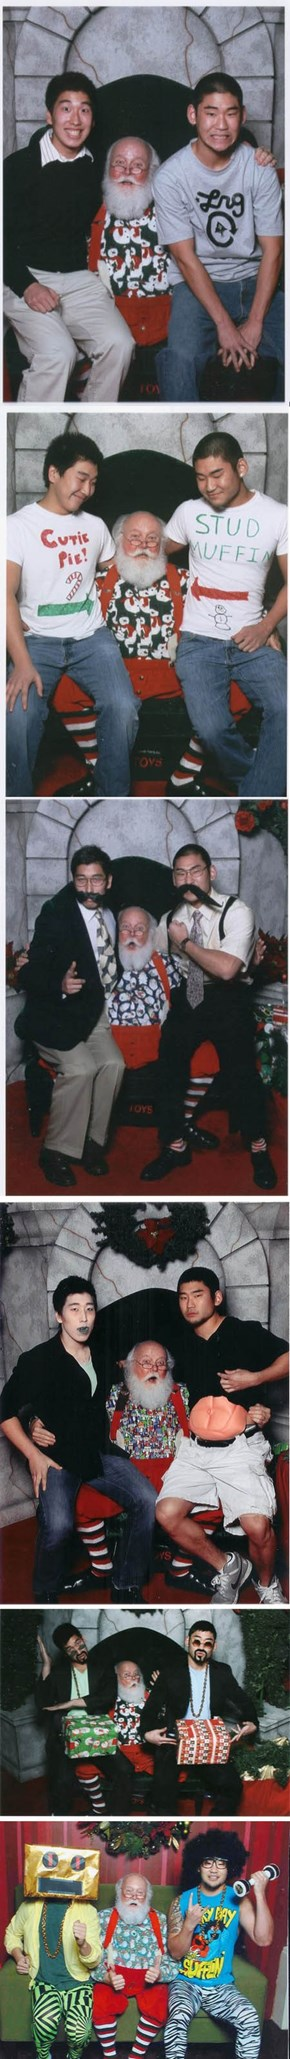 Photos With Santa: Expert Level!